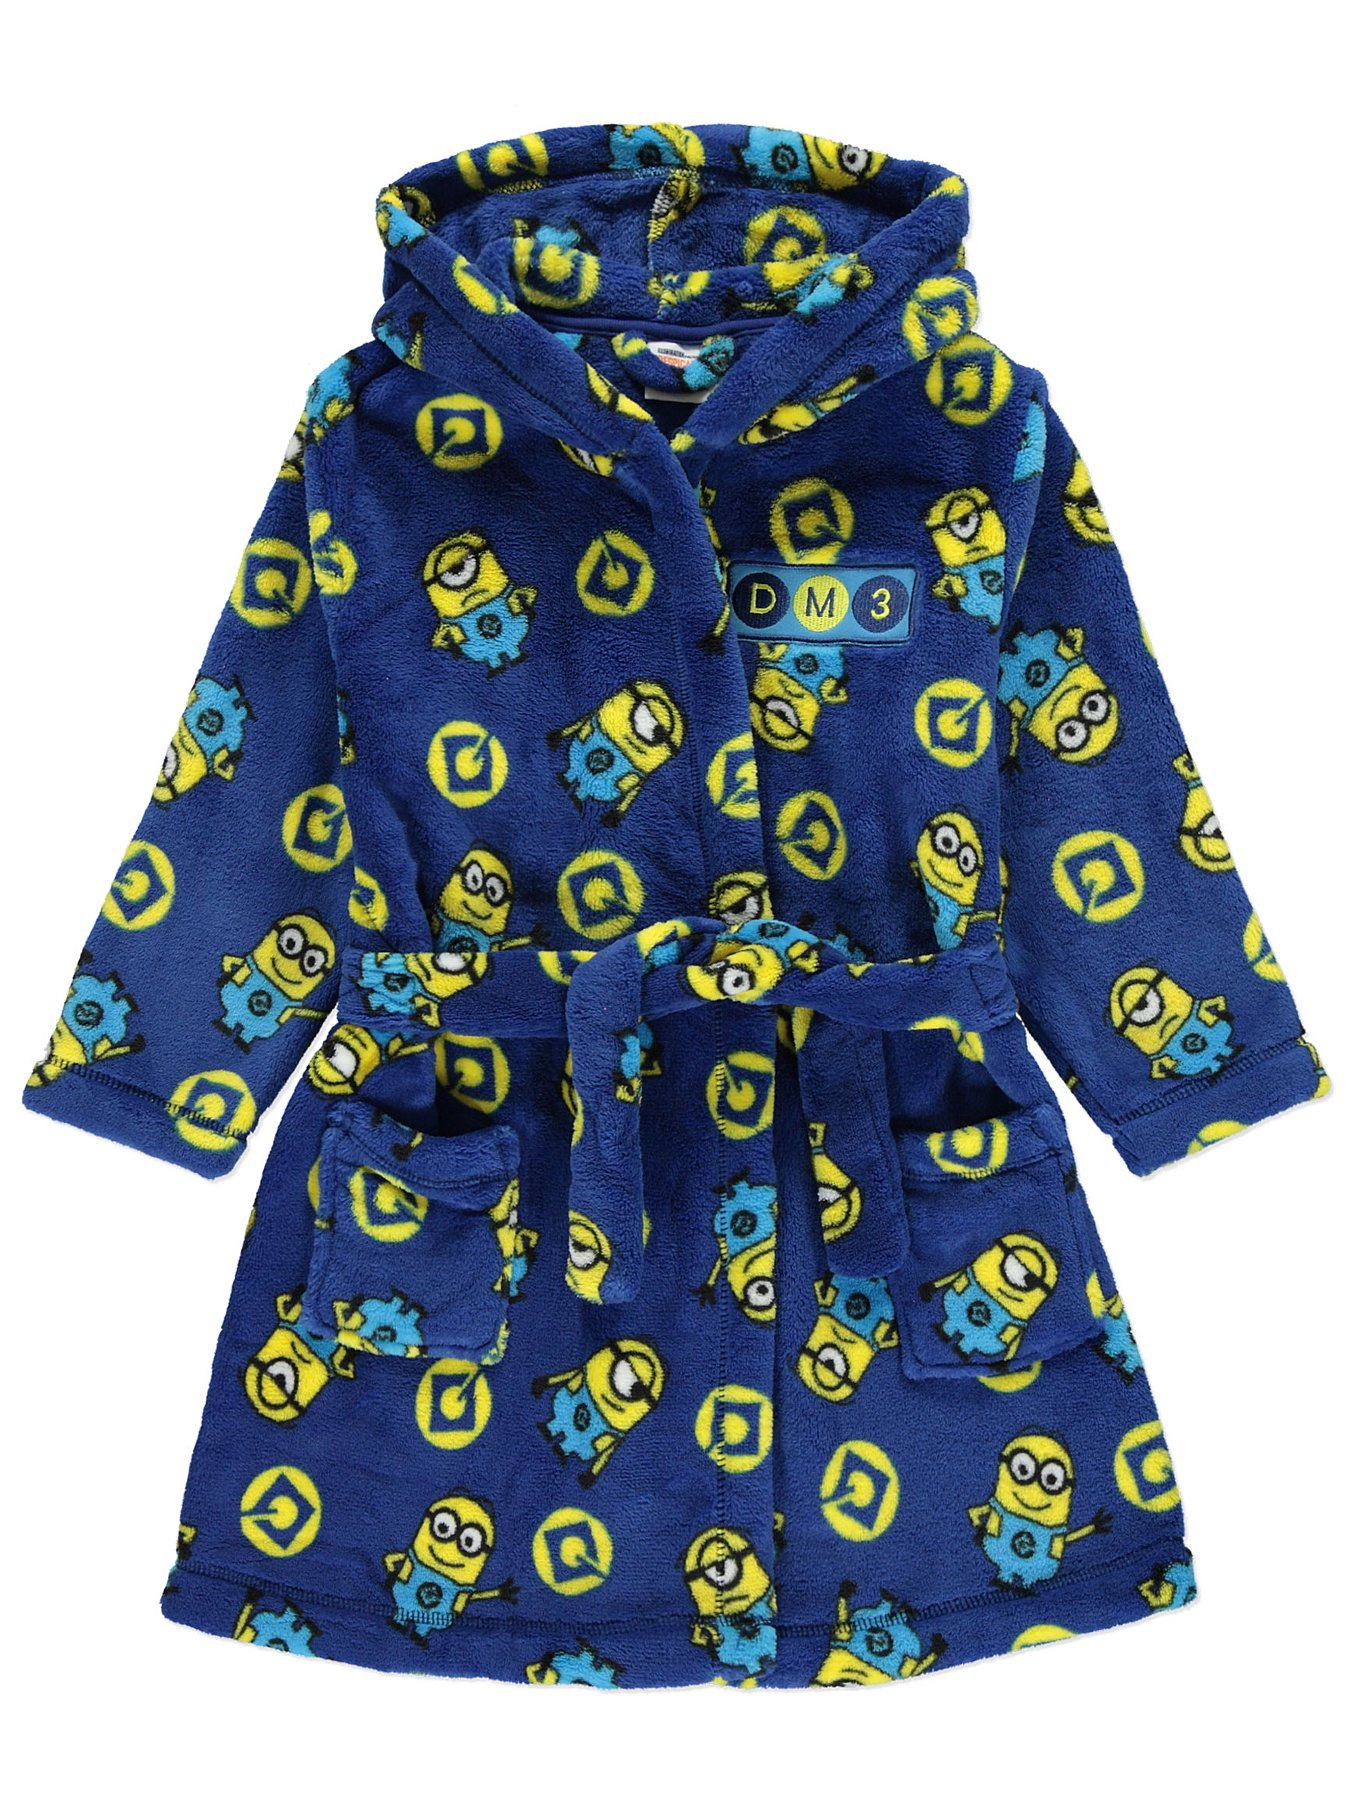 Despicable Me 3 Minions Dressing Gown | Kids | George